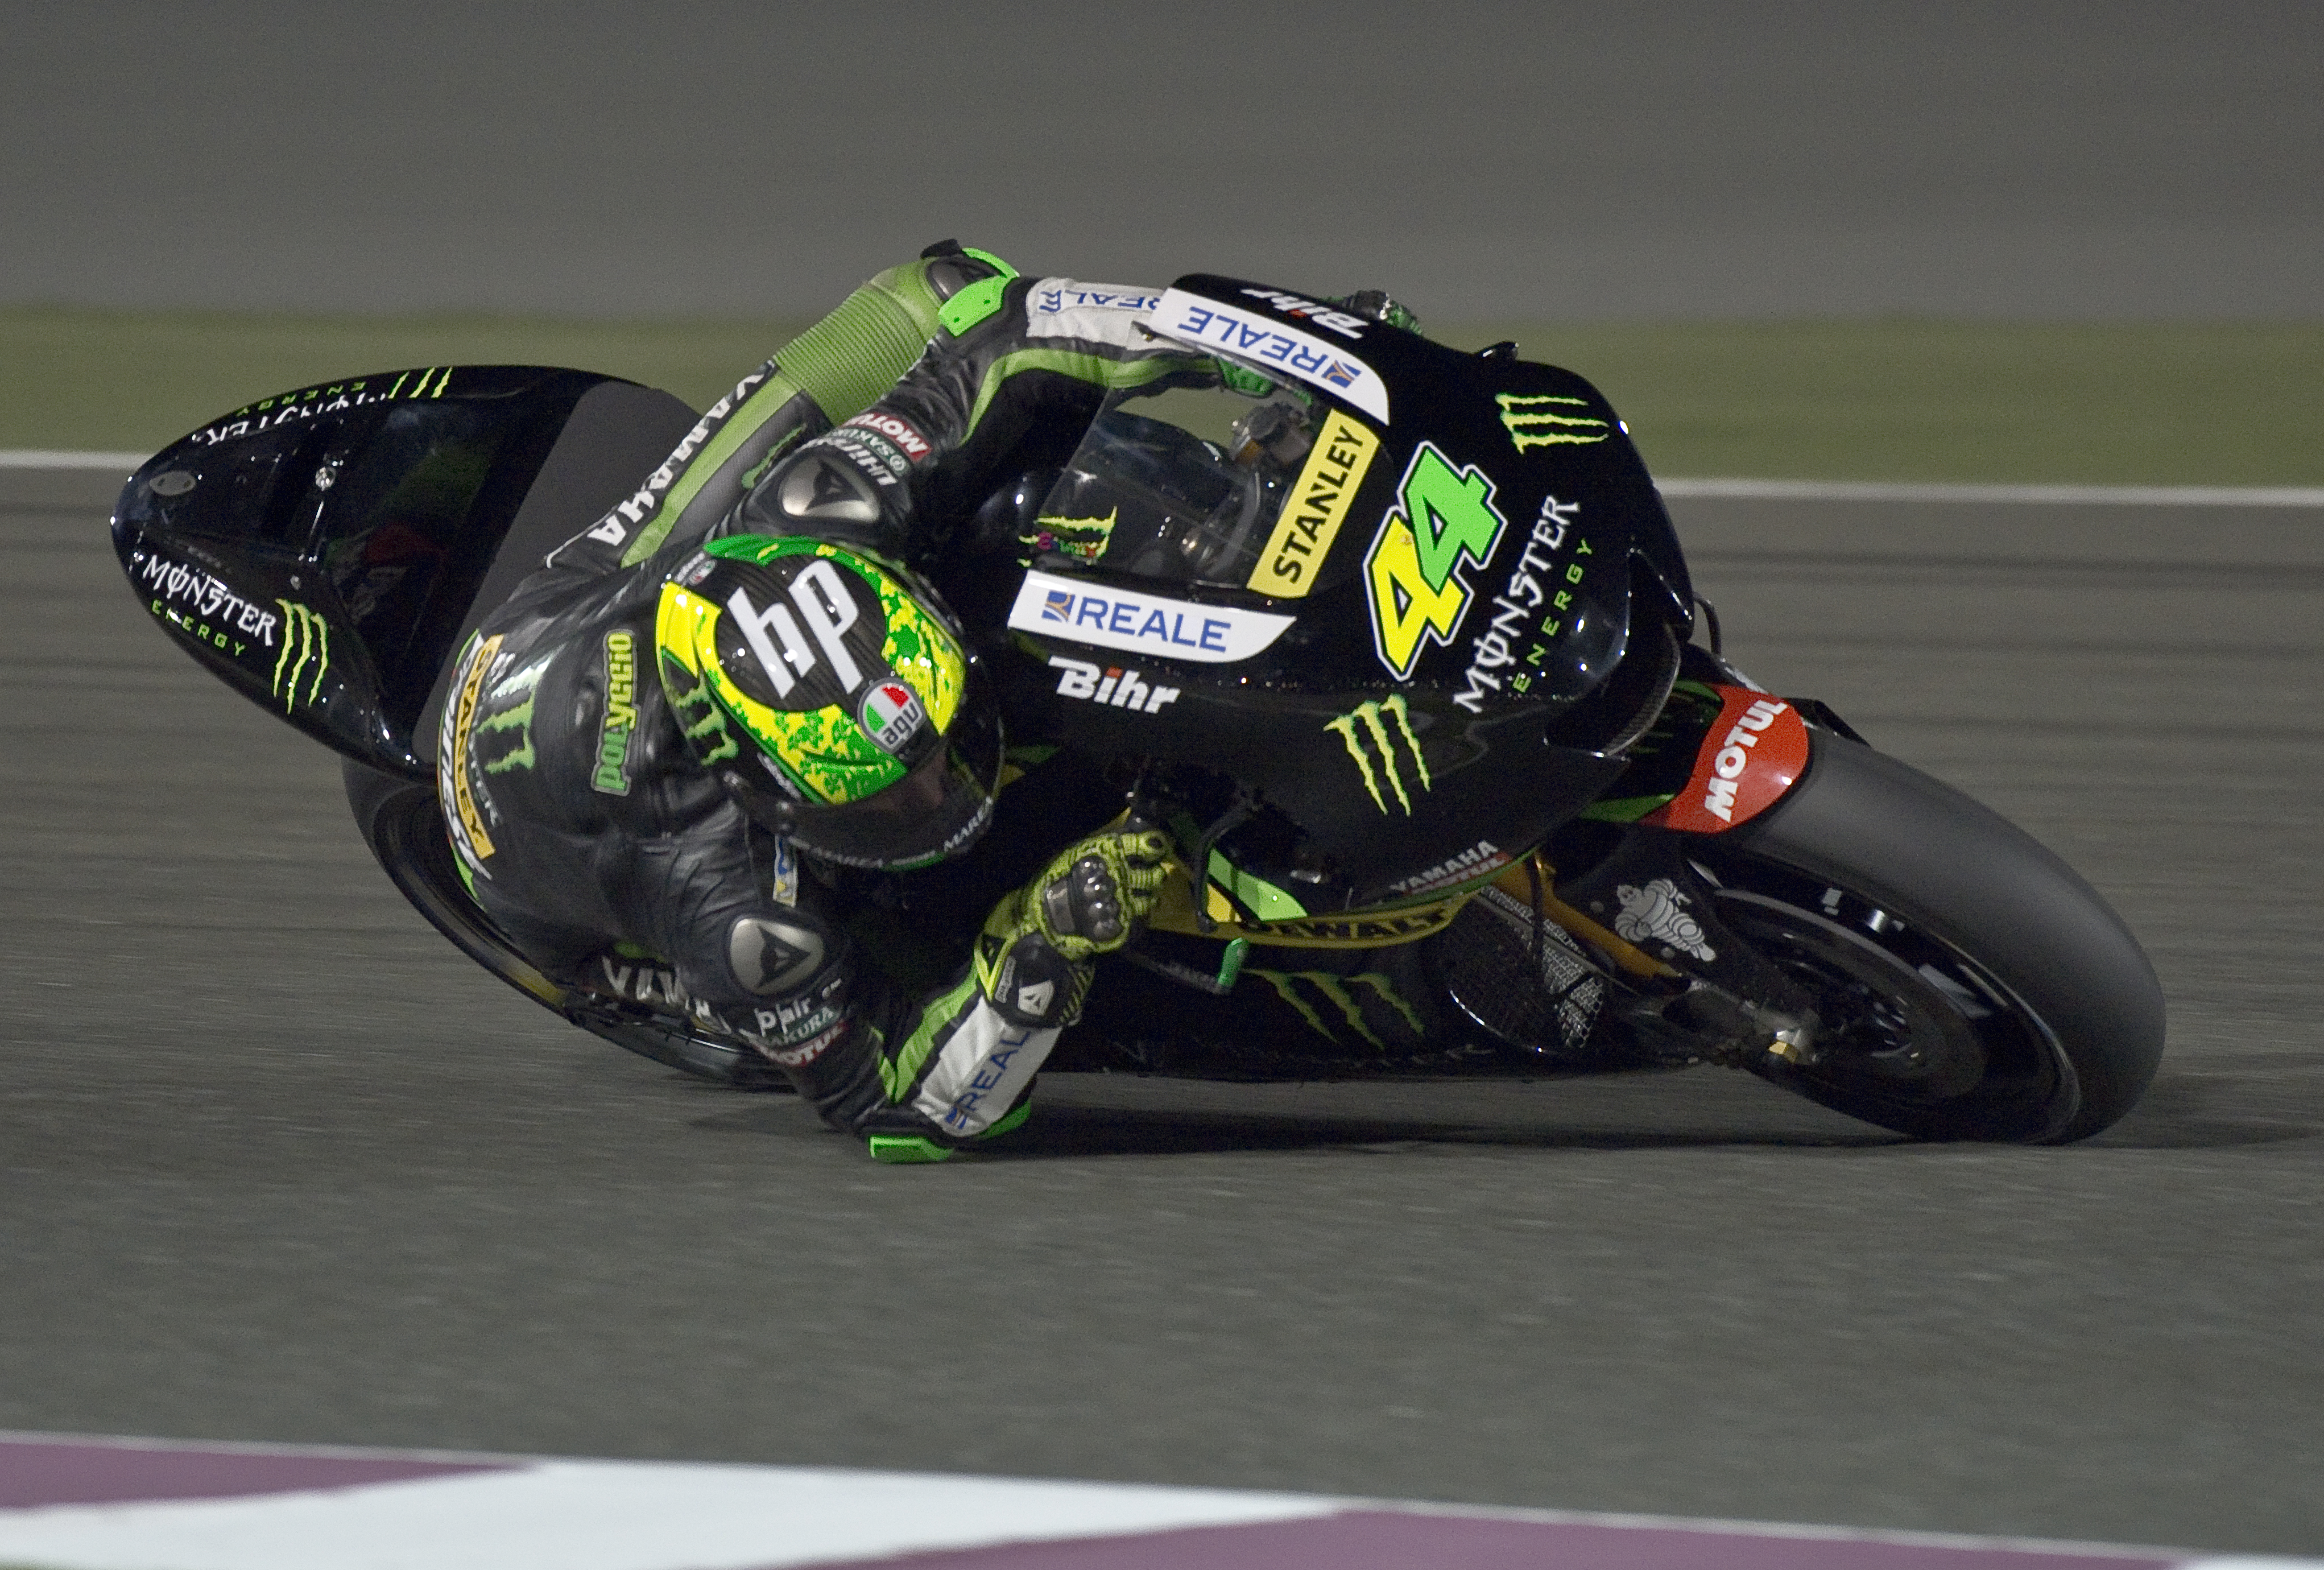 Determined Tech3 duo power on in day 2 at Qatar